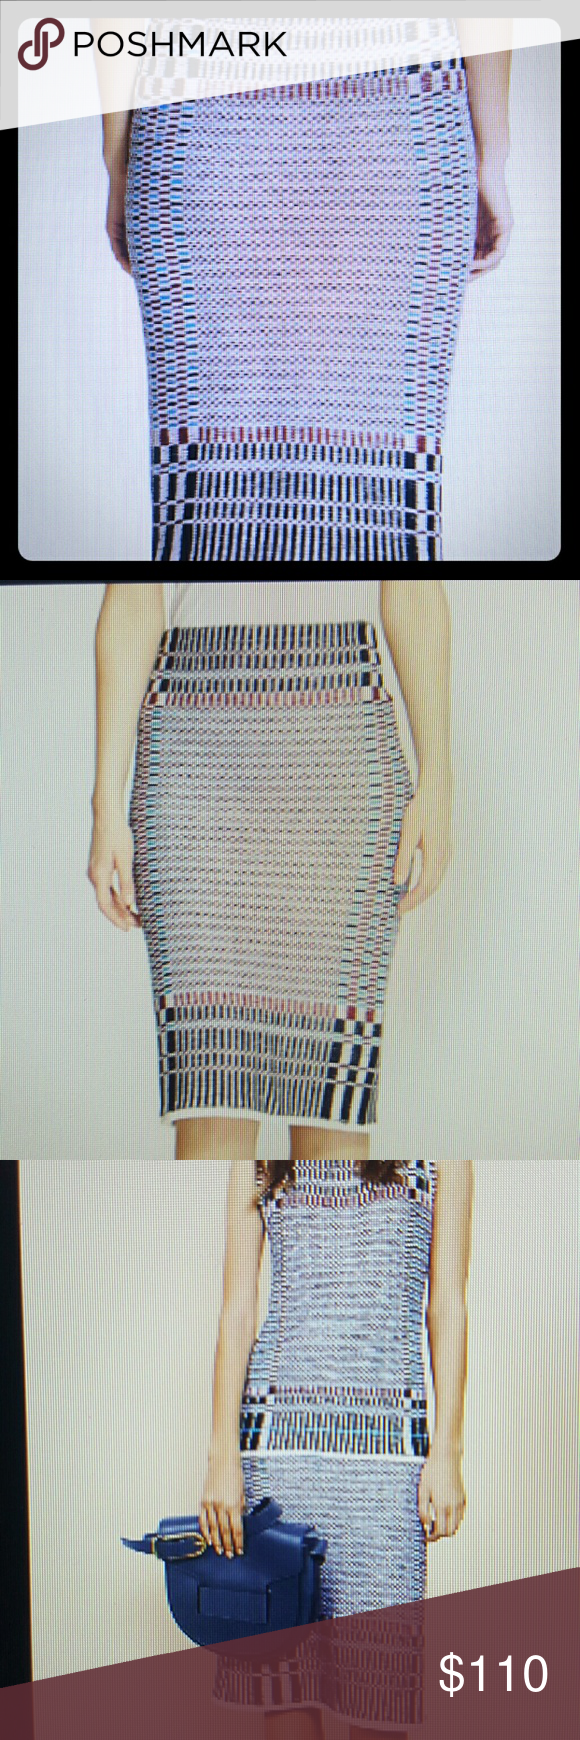 TORY BURCH..JACQUARD PENCIL SKIRT TORY BURCH..JACQUARD PENCIL SKIRT..26in length..pulling style..100%cotton..dry clean..multi colored. blues and white and red Tory Burch Skirts Pencil